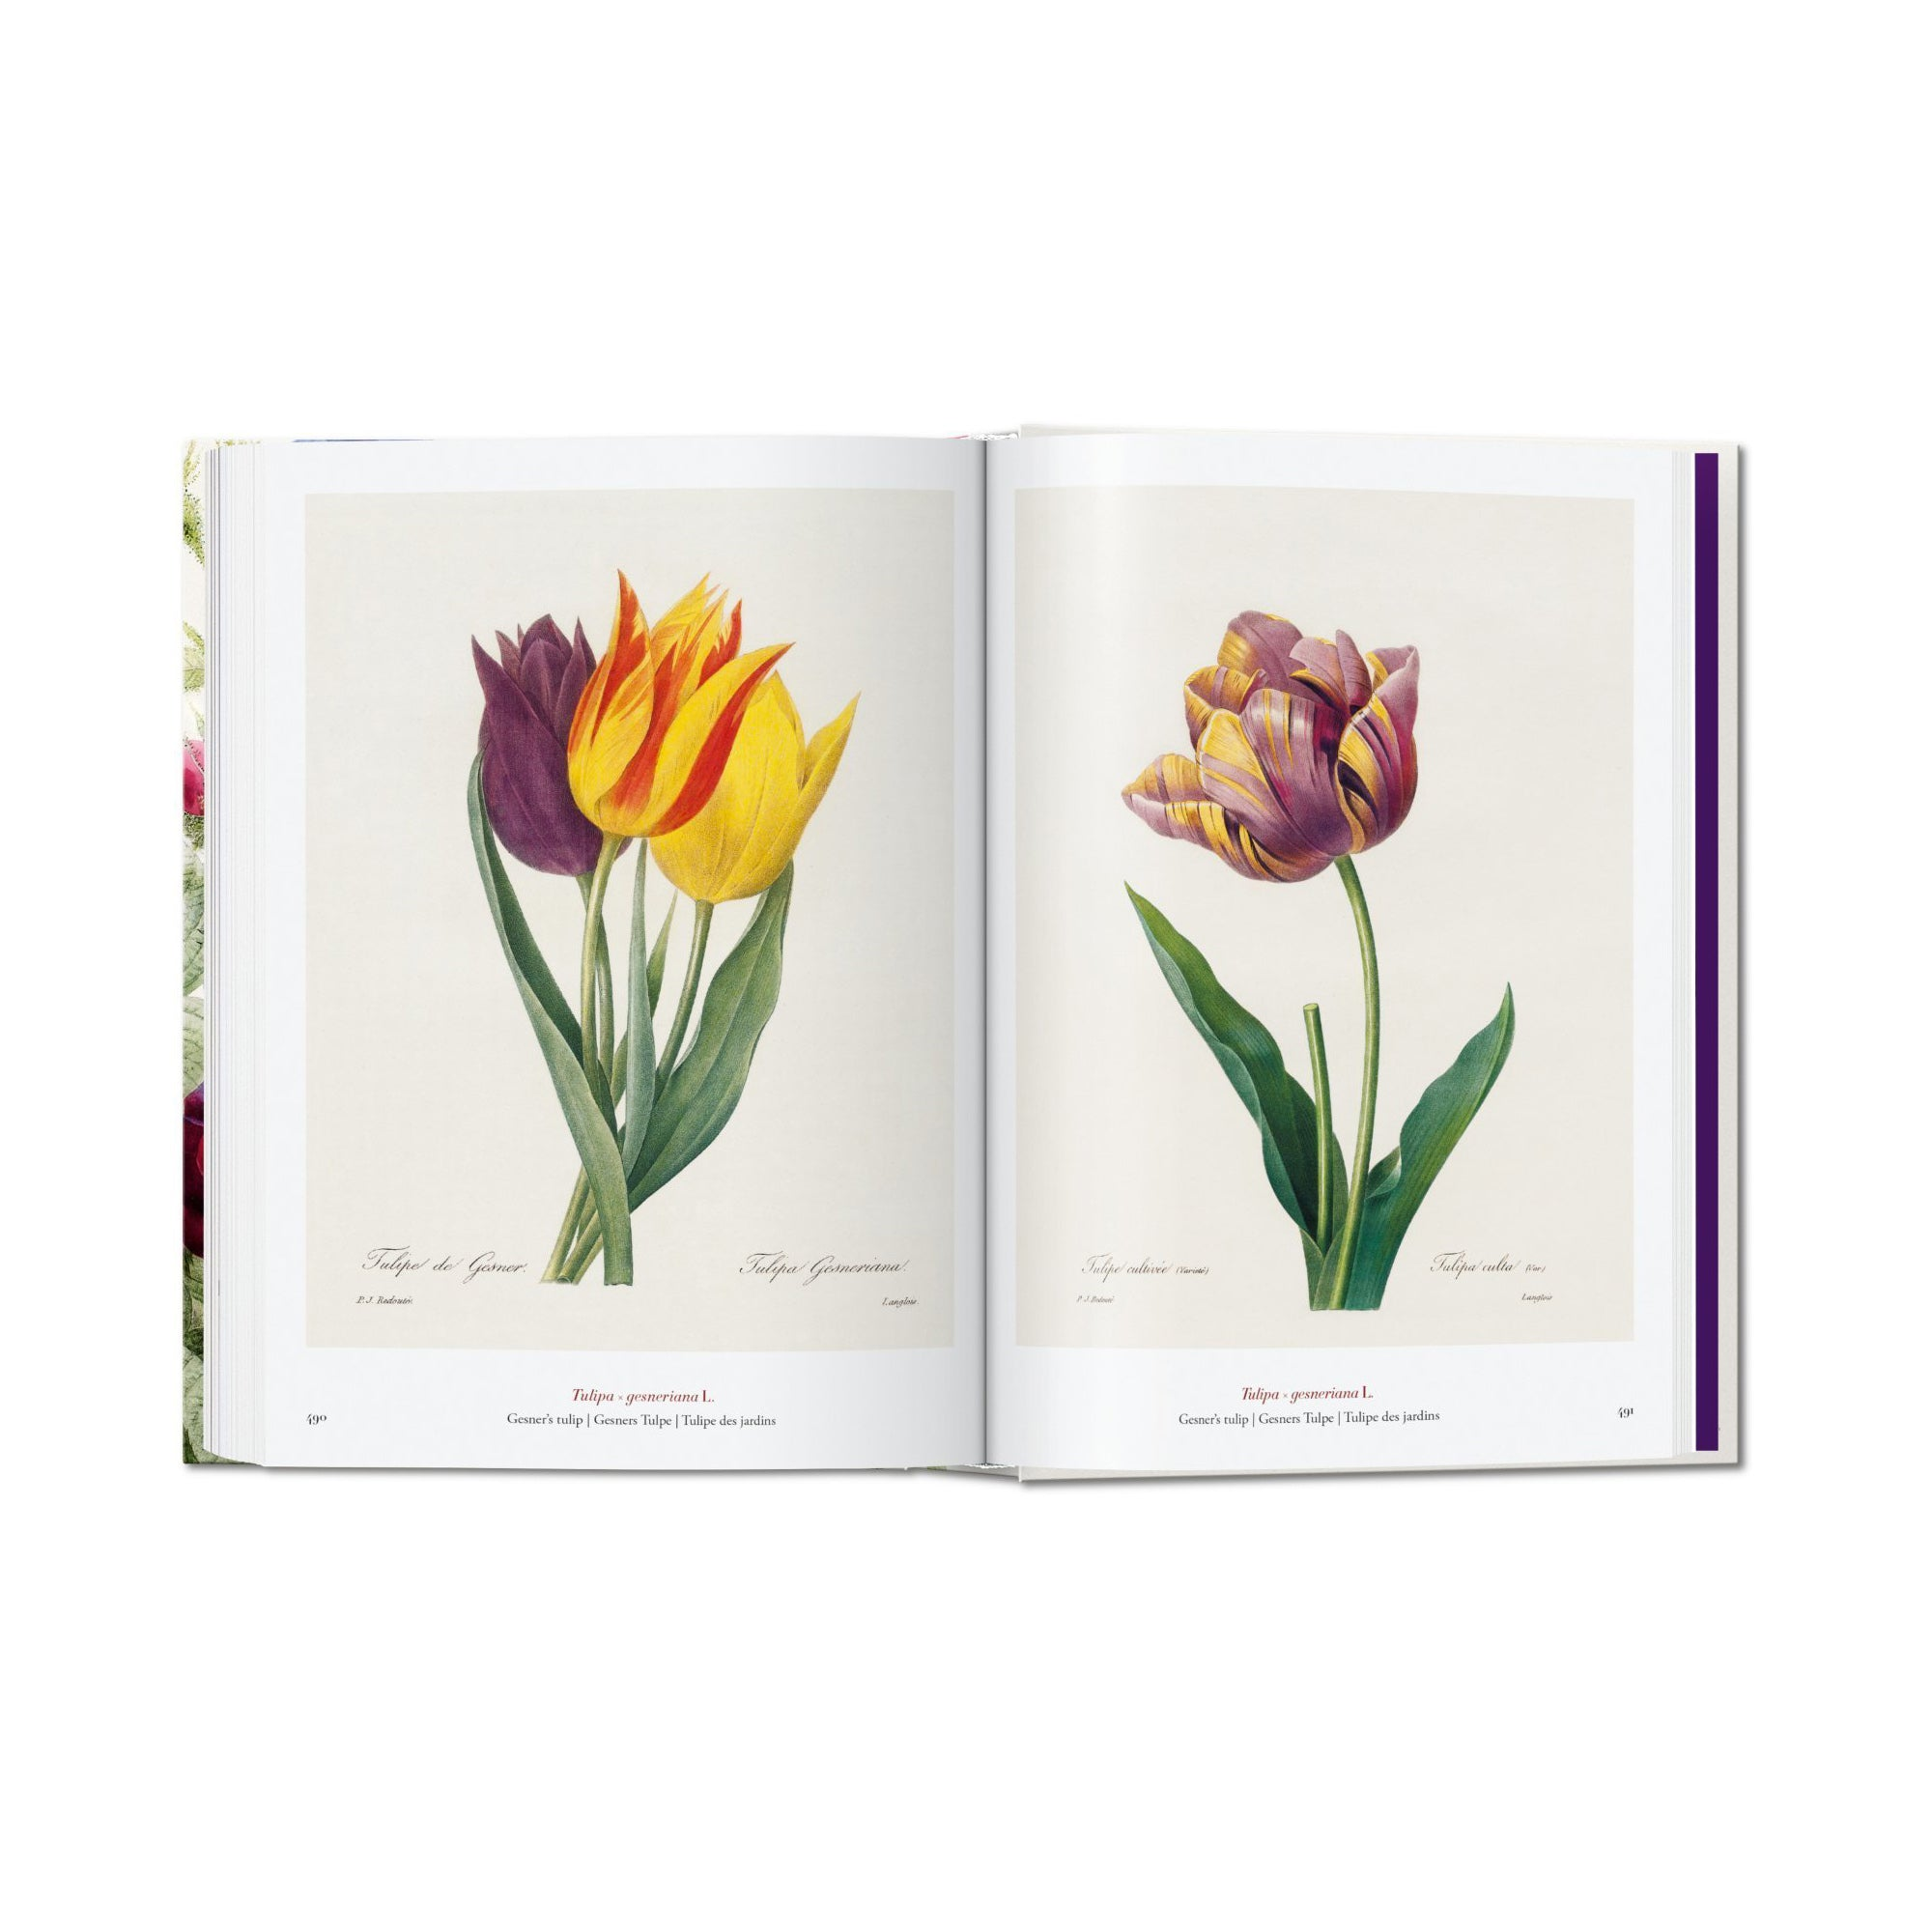 Redouté. Book of Flowers. 40th Aniversary Edition